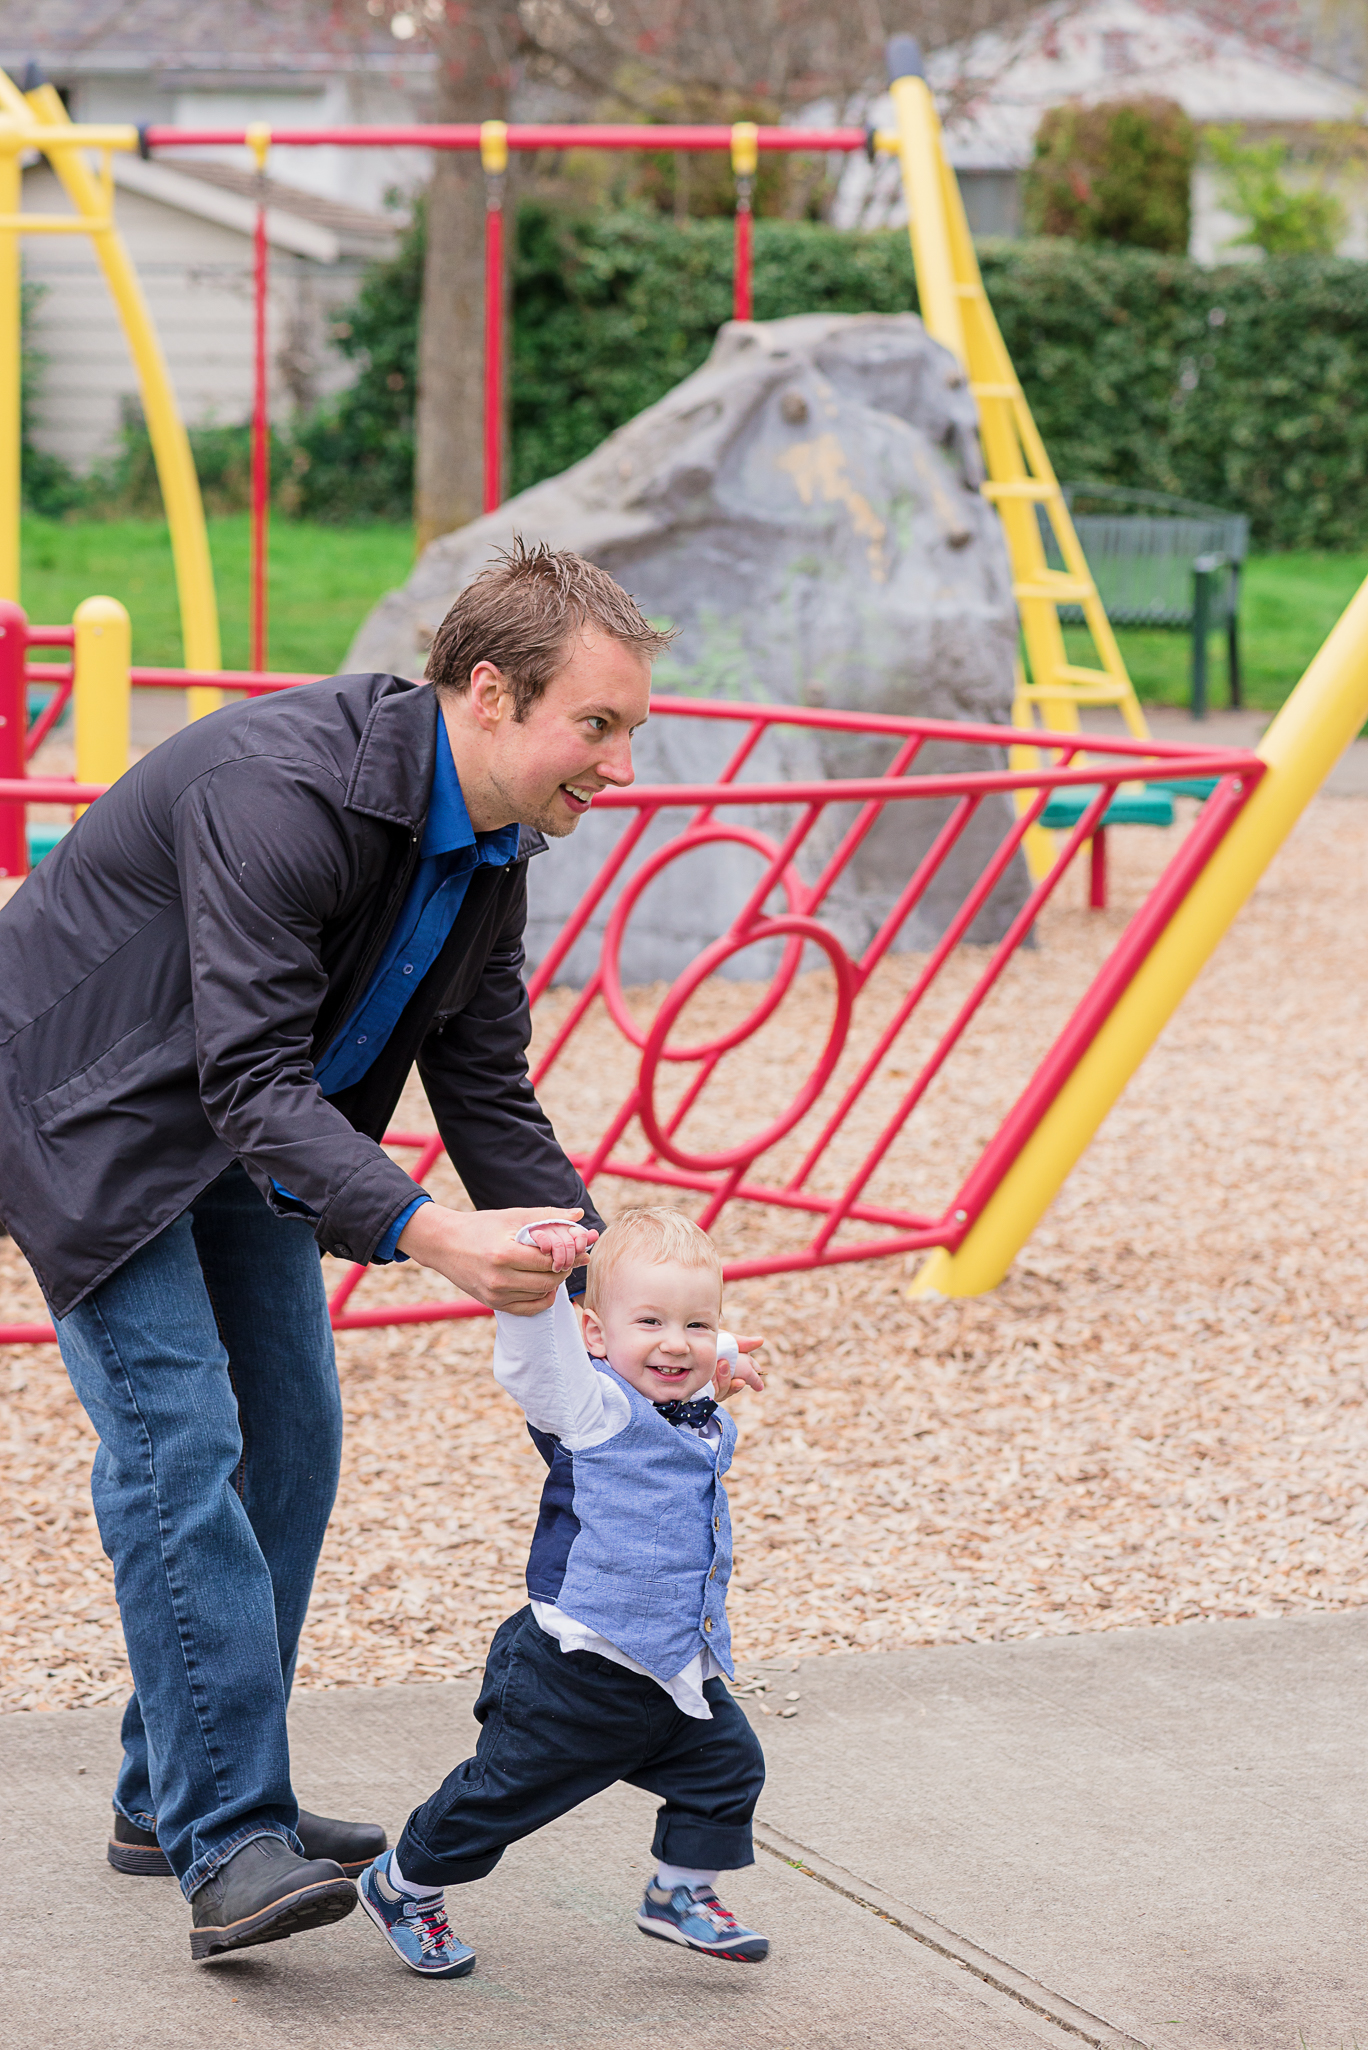 Nicola_Reiersen_Family_Photographer_Victoria_BC_Playground_Session.jpg